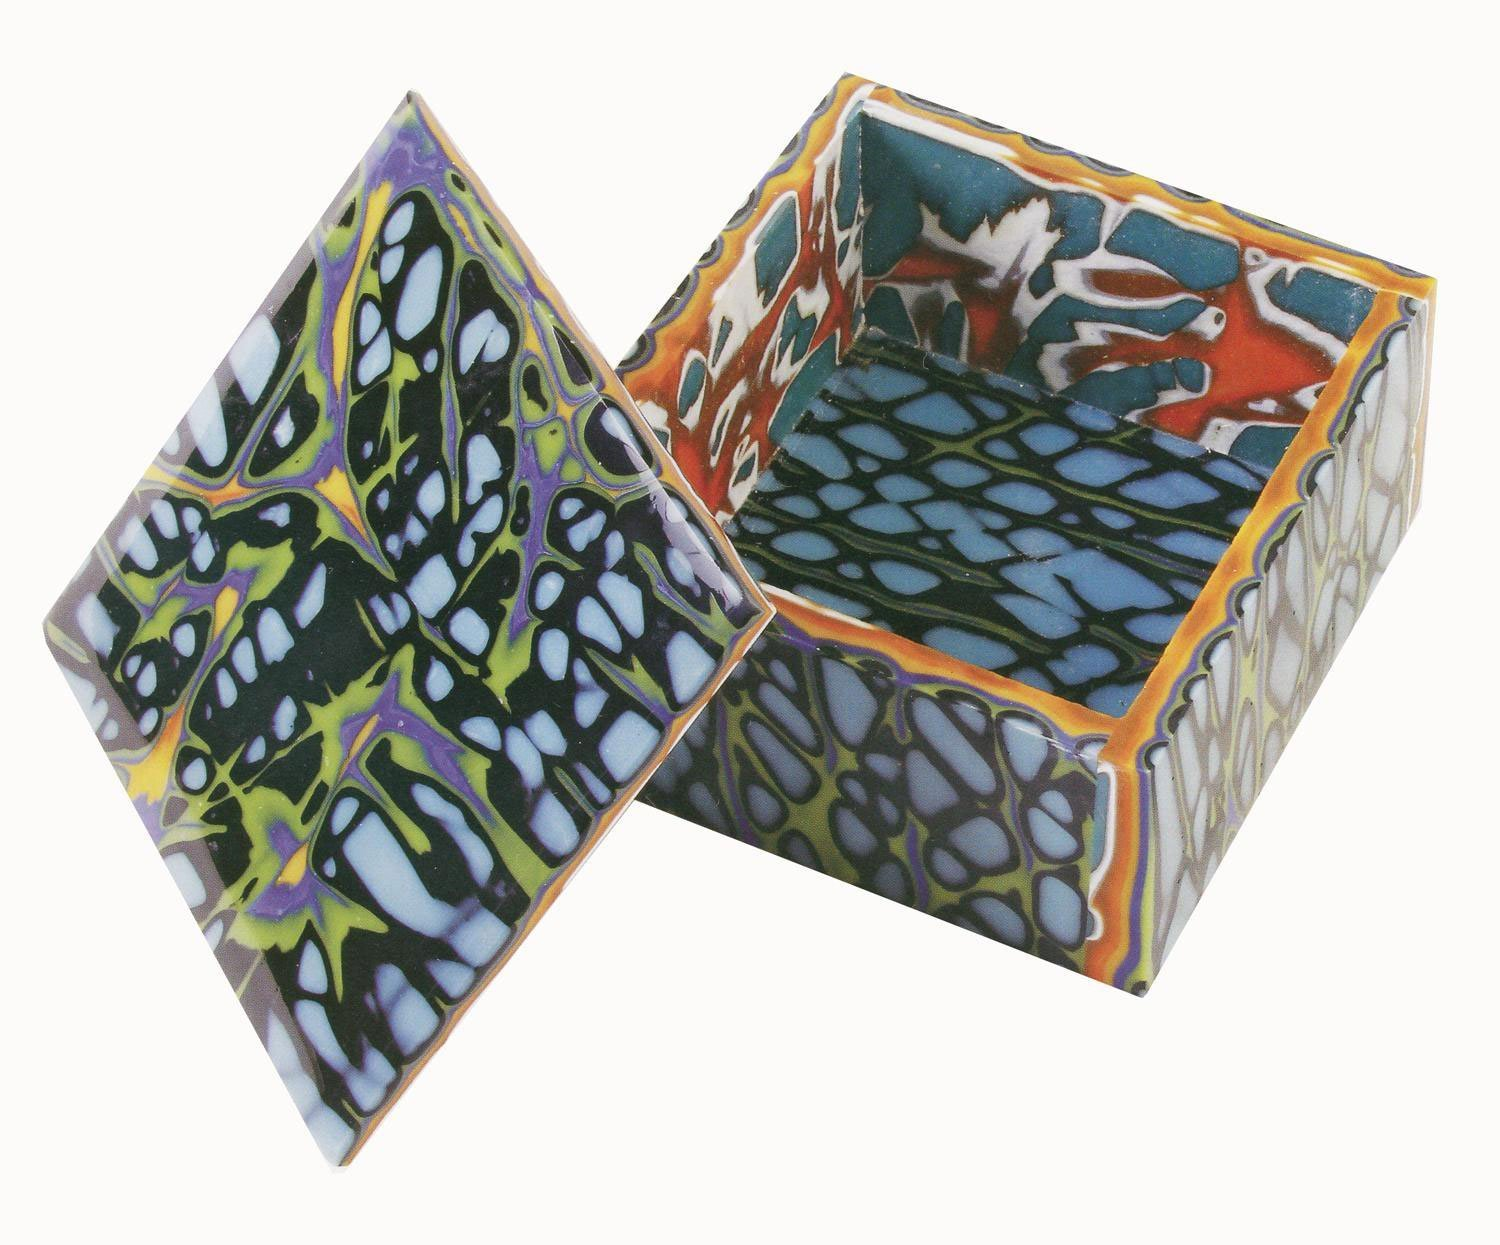 Fire Brick - 2 Pack by Delphi Glass